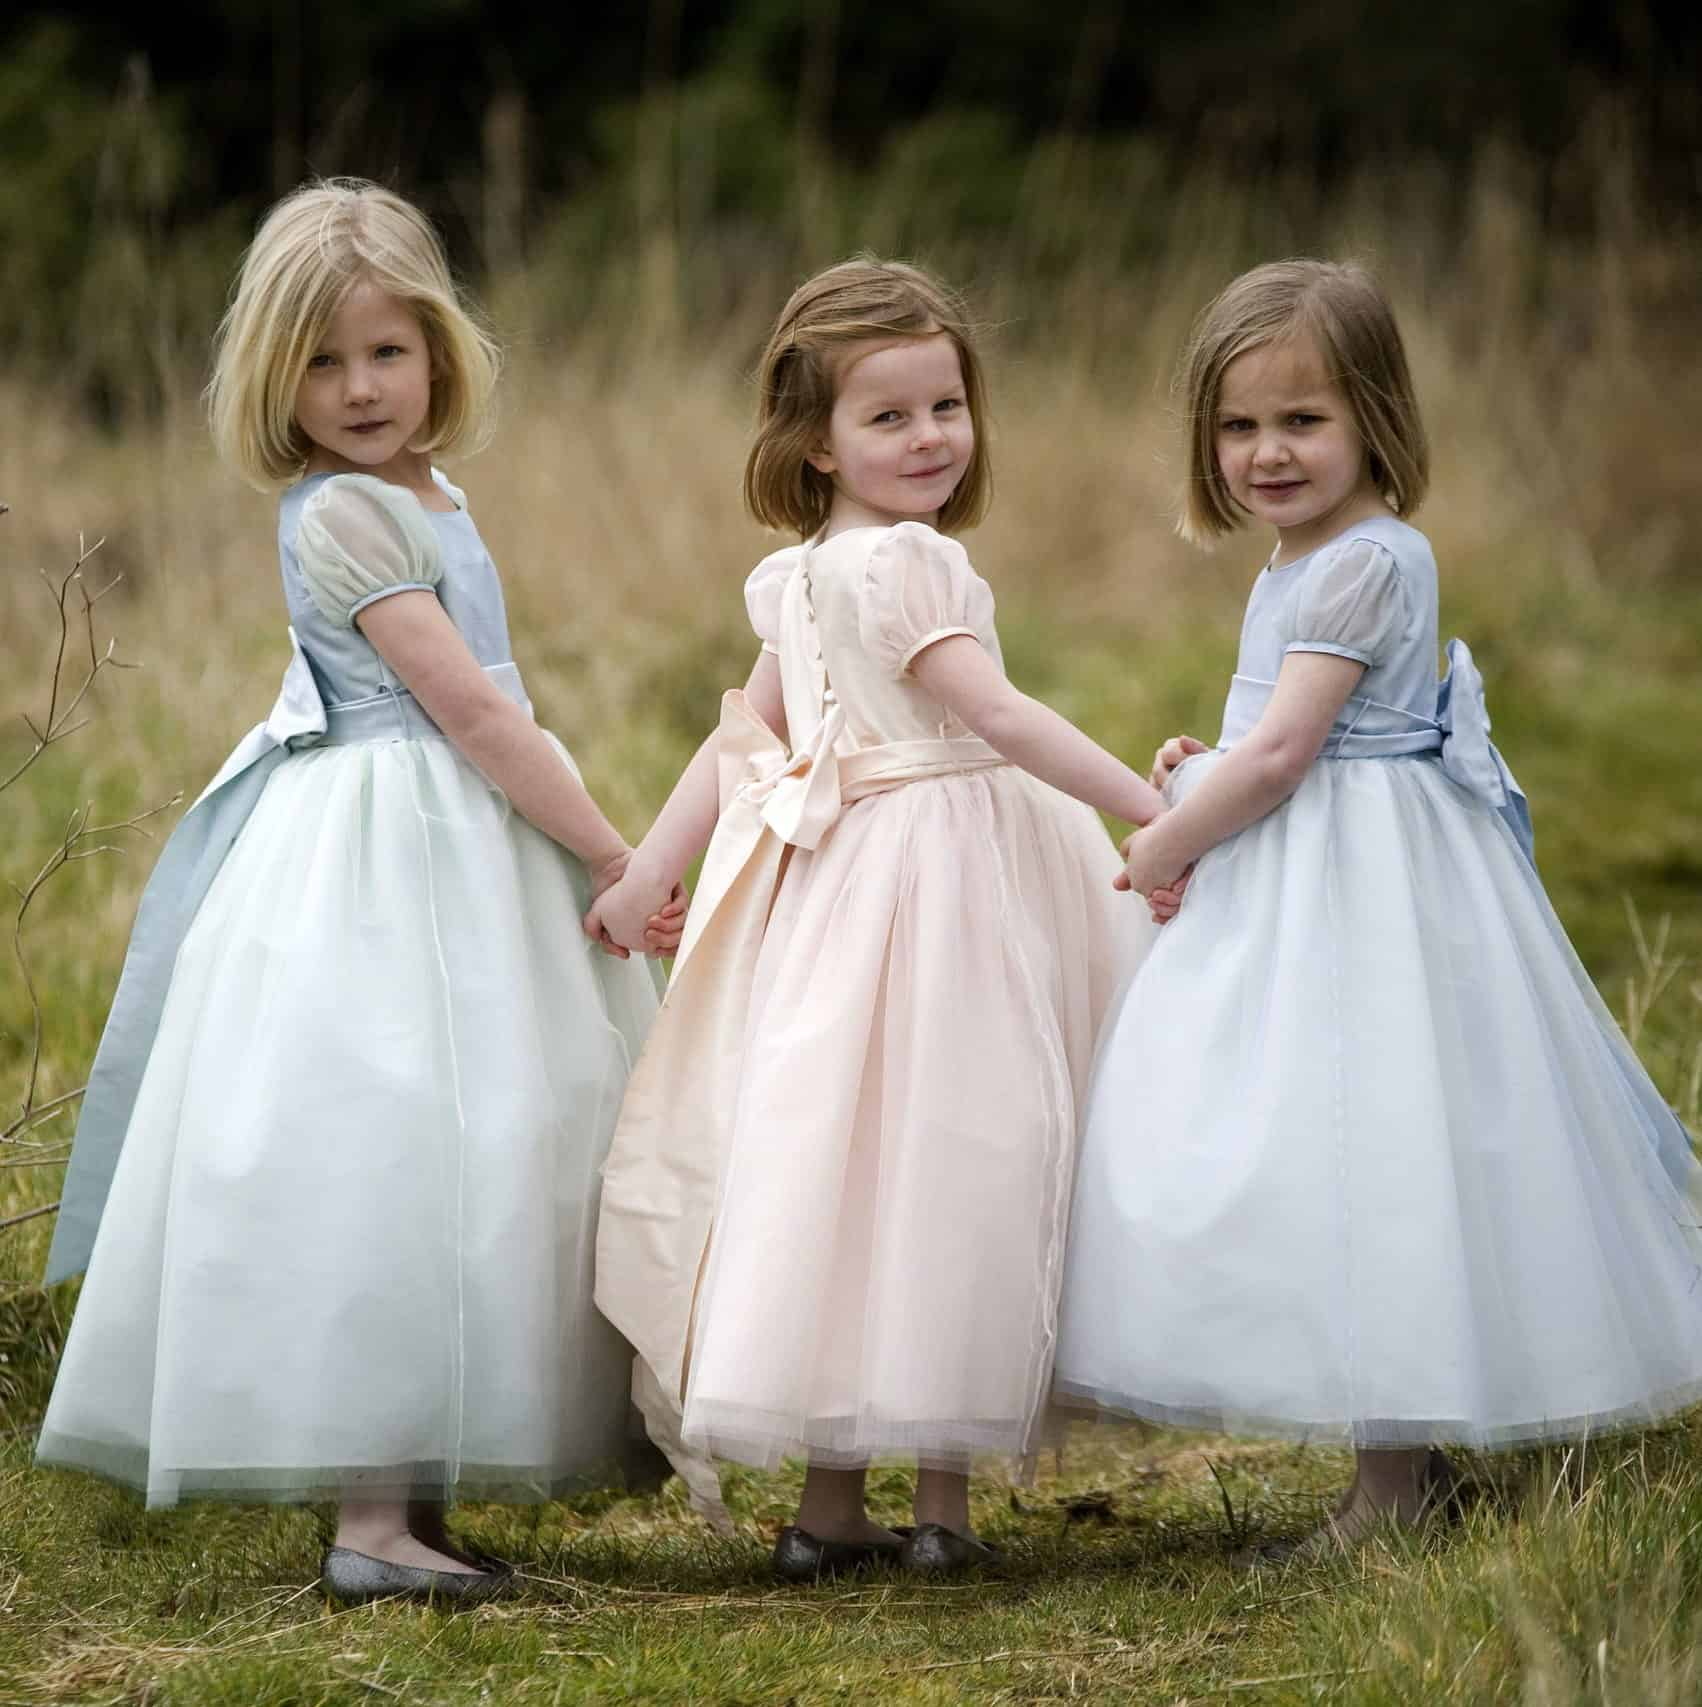 flower girls with classic royal style dresses in blue and pink by Nicki Macfarlane